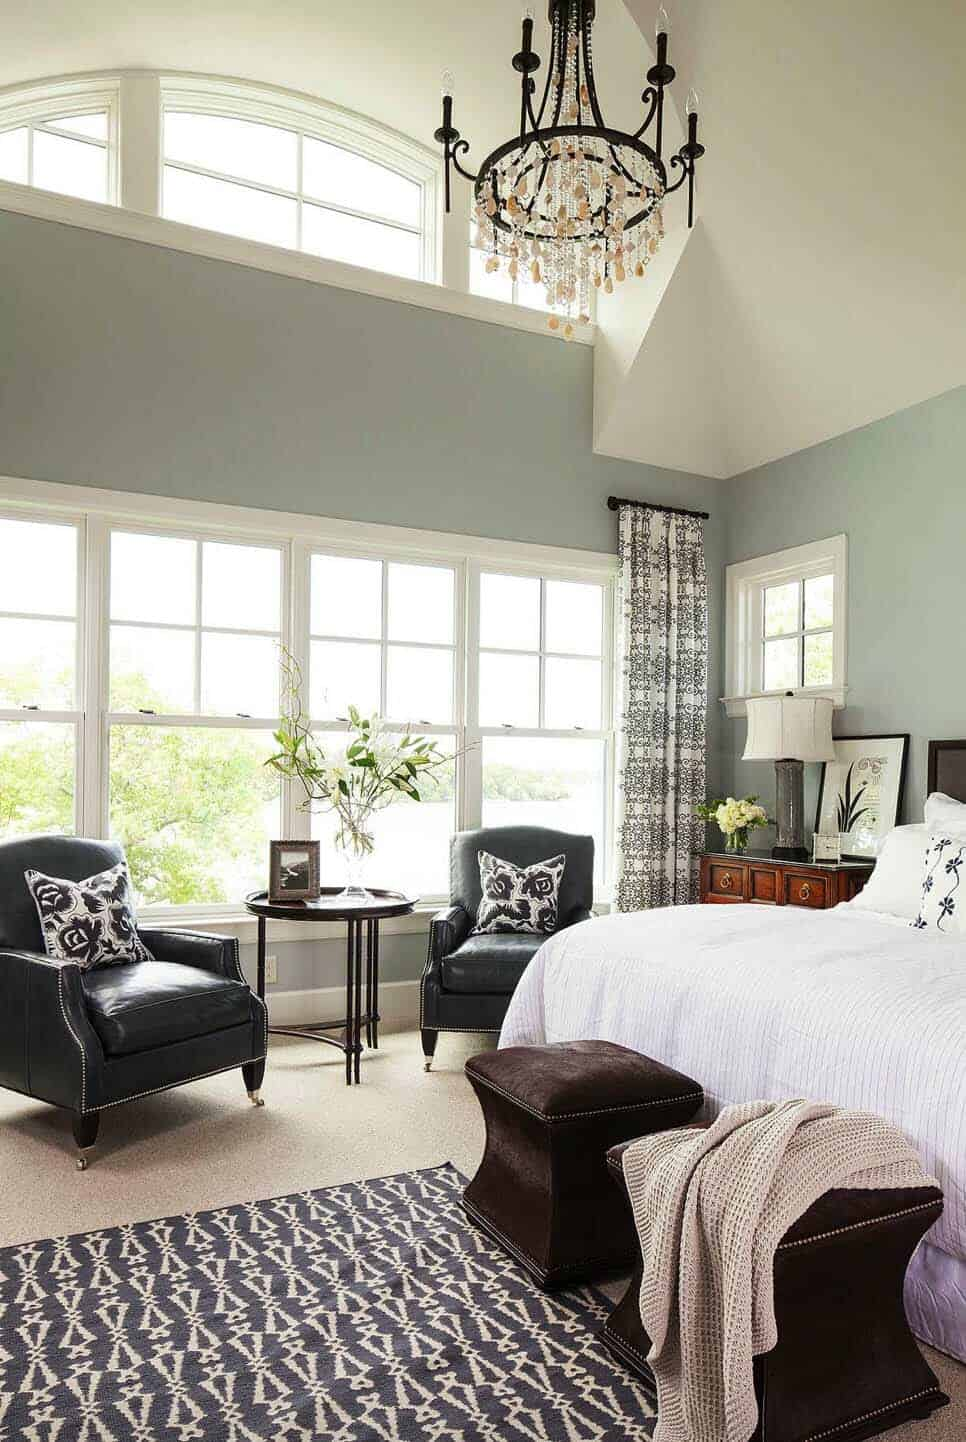 12 Absolutely stunning master bedroom color scheme ideas